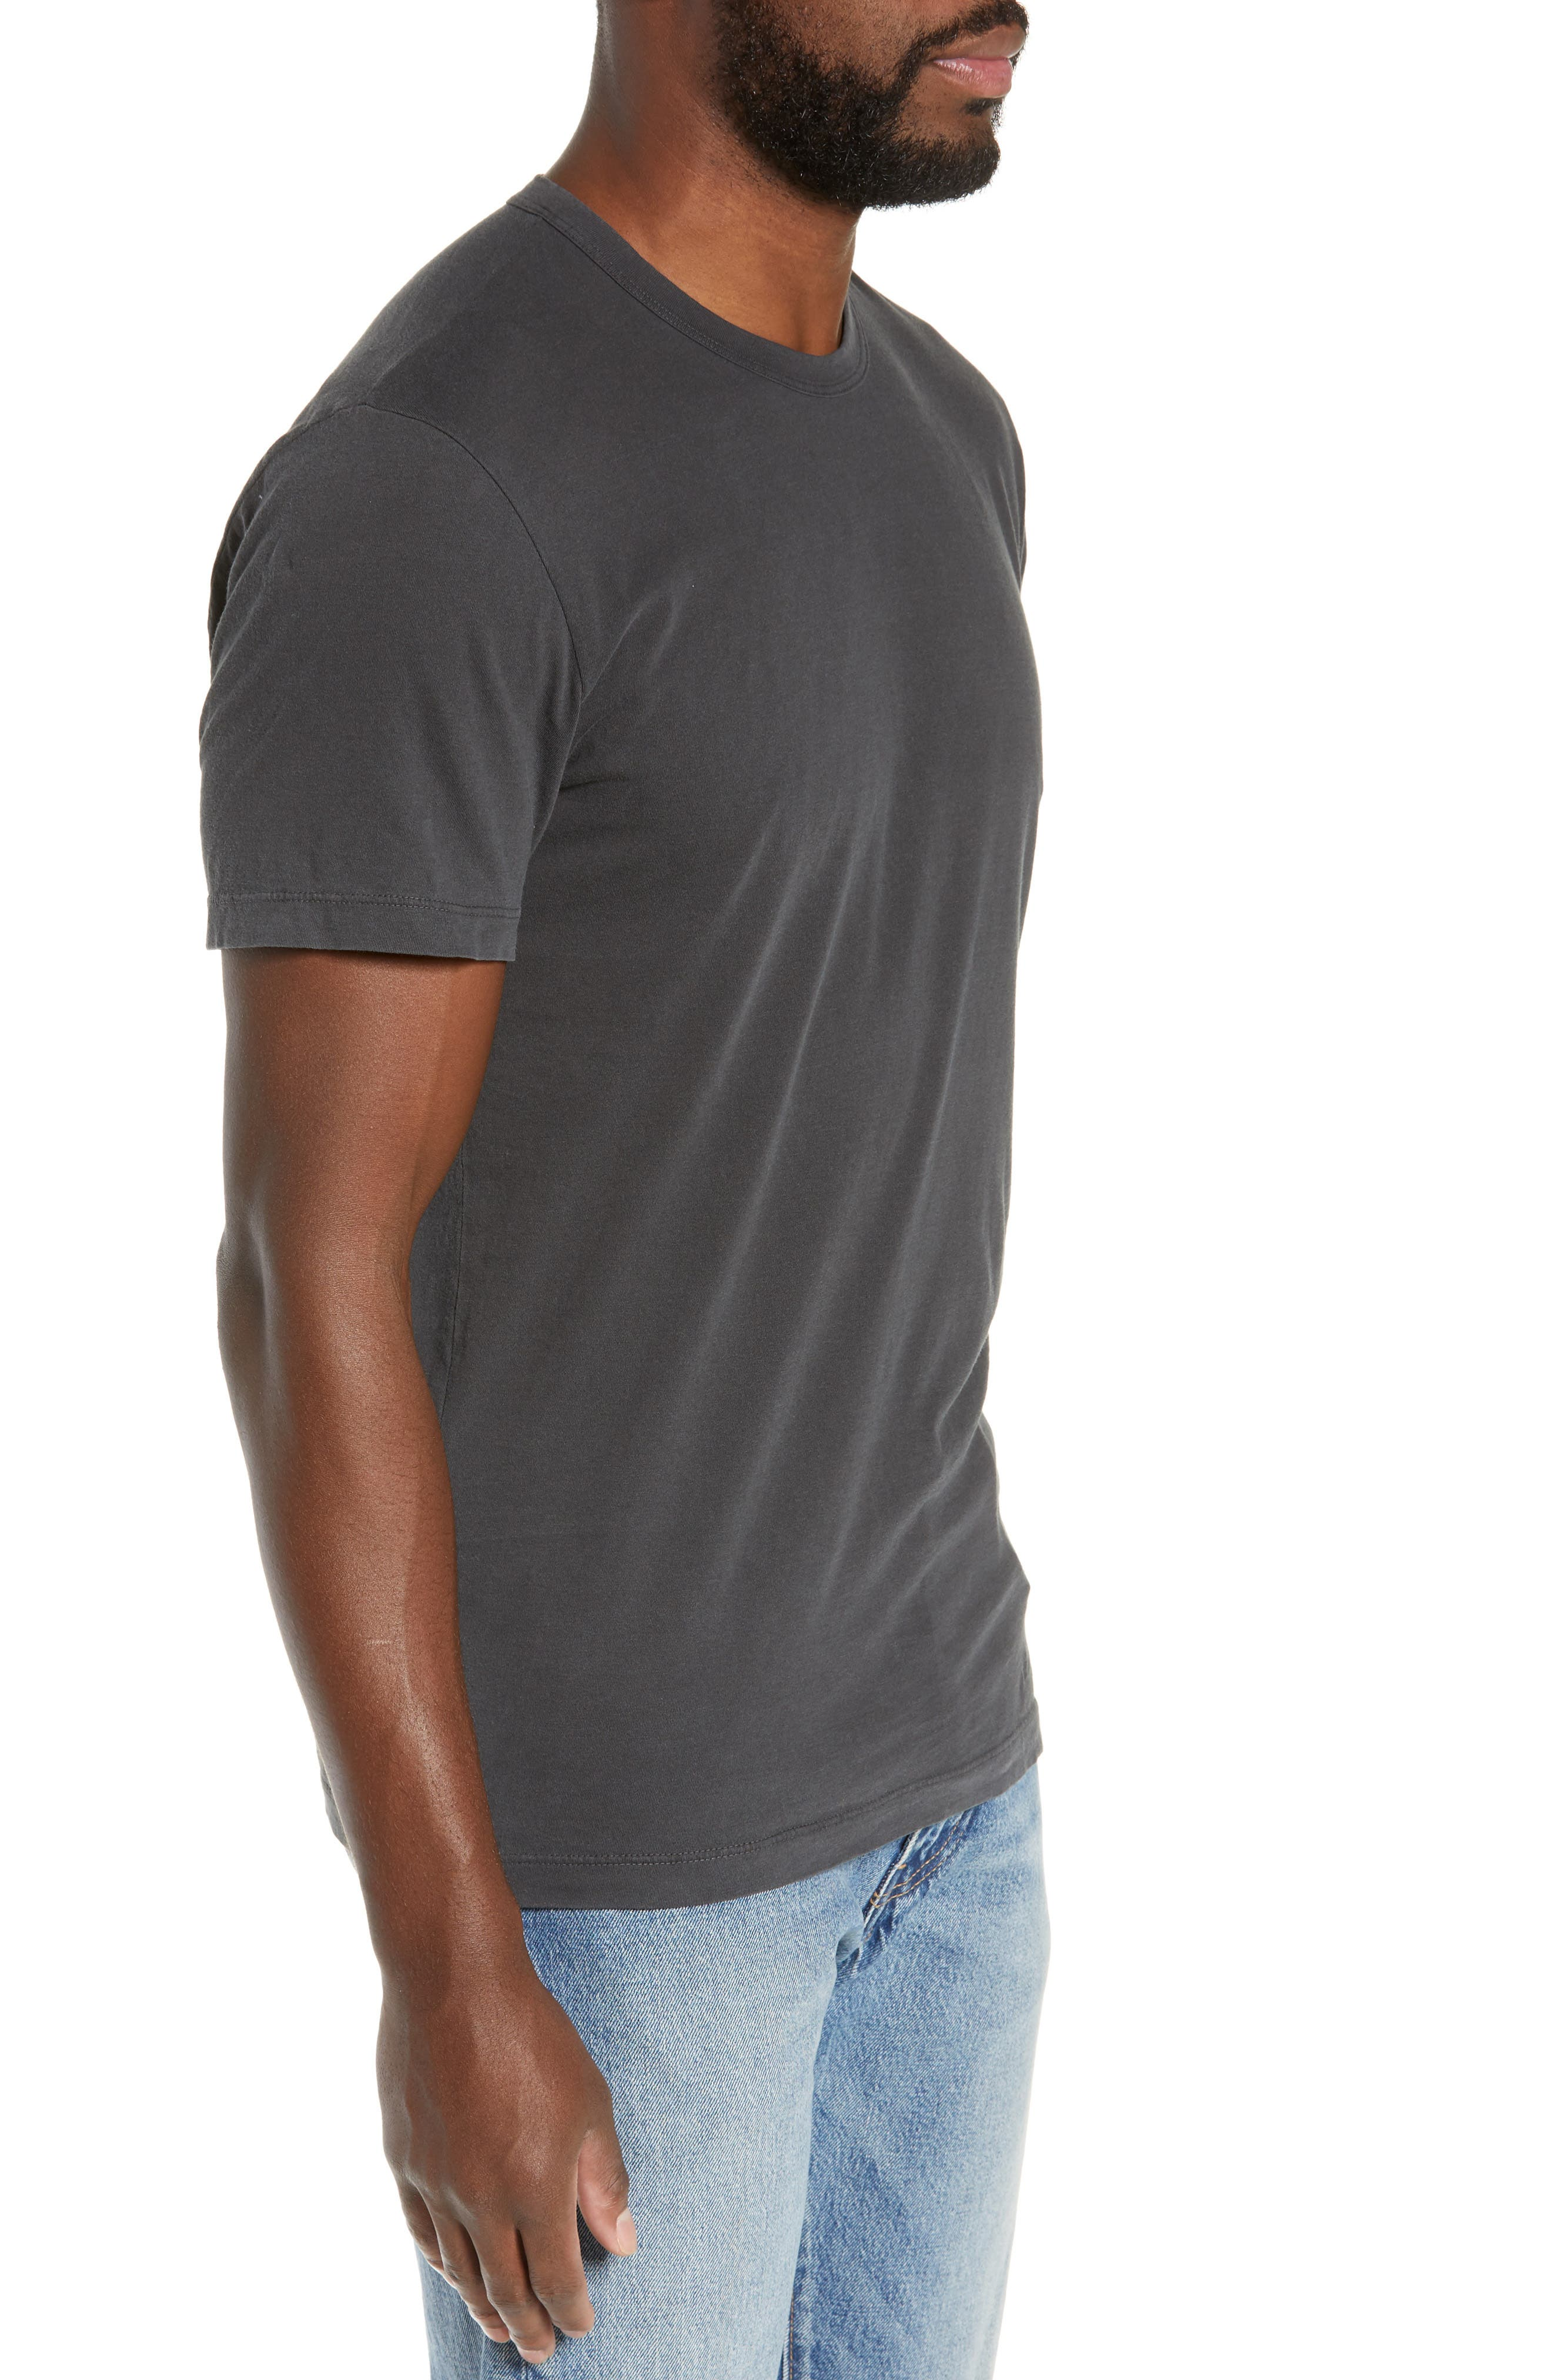 JAMES PERSE, Regular Fit Tonal Palms Crewneck Shirt, Alternate thumbnail 3, color, 020